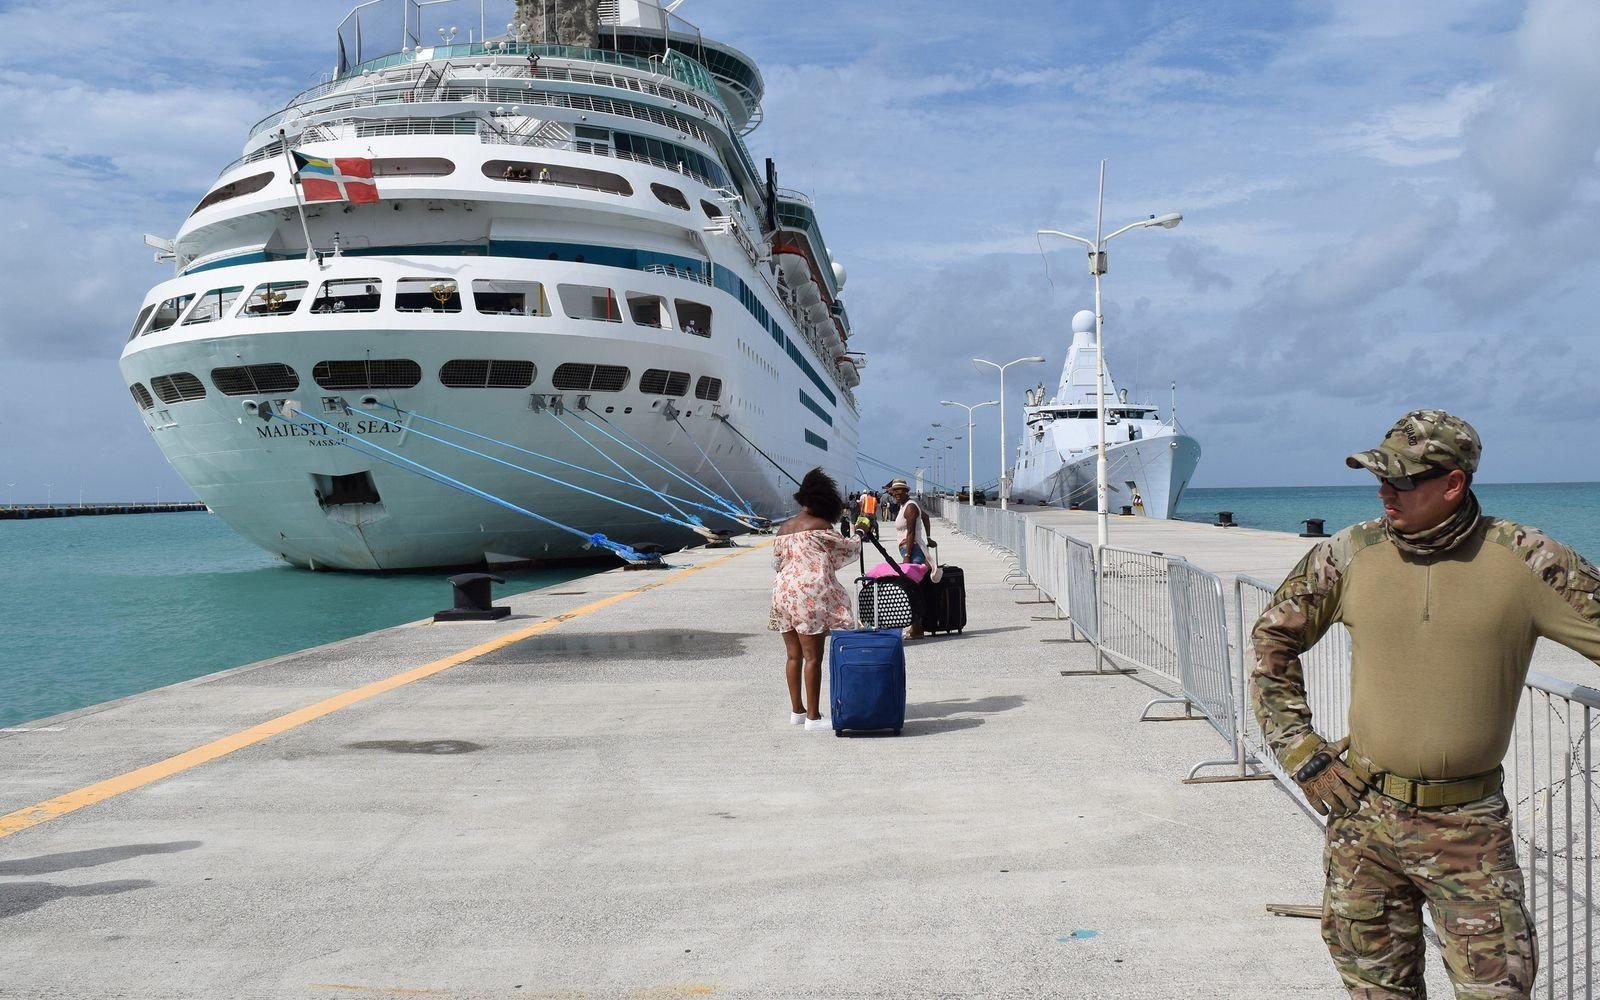 Saint Martin cruise ship after Hurricane Irma